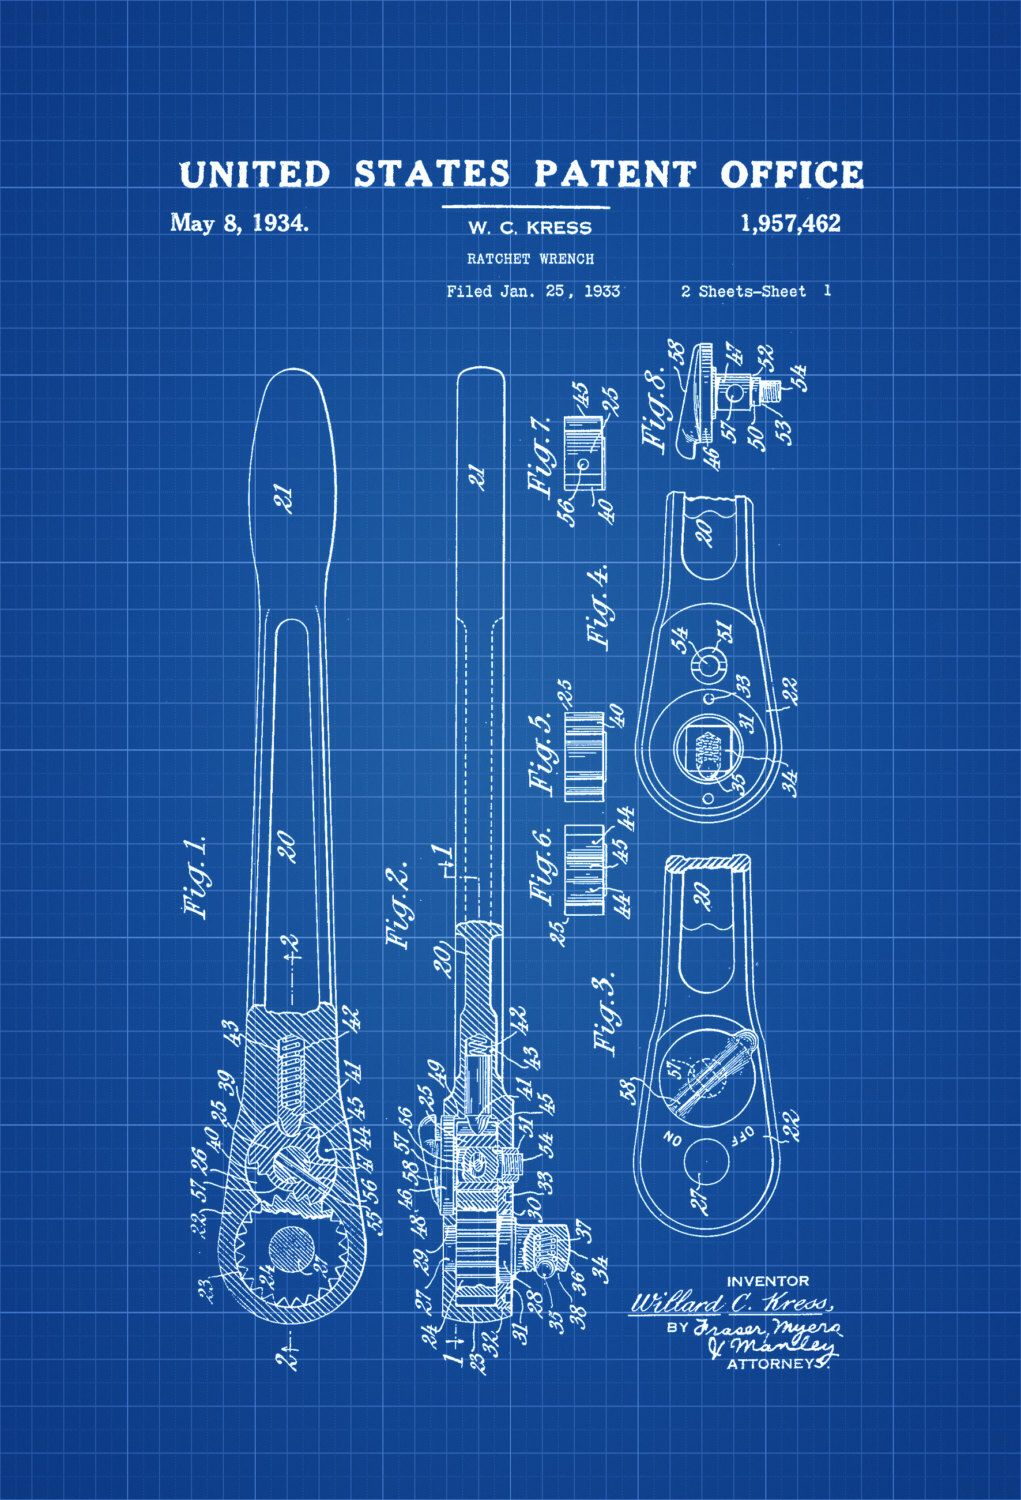 office drawing tools. Ratchet Wrench Patent - Print, Wall Decor, Office Mechanic Gift, Drawing Tool, Car Lover Garage Workshop Decor Tools